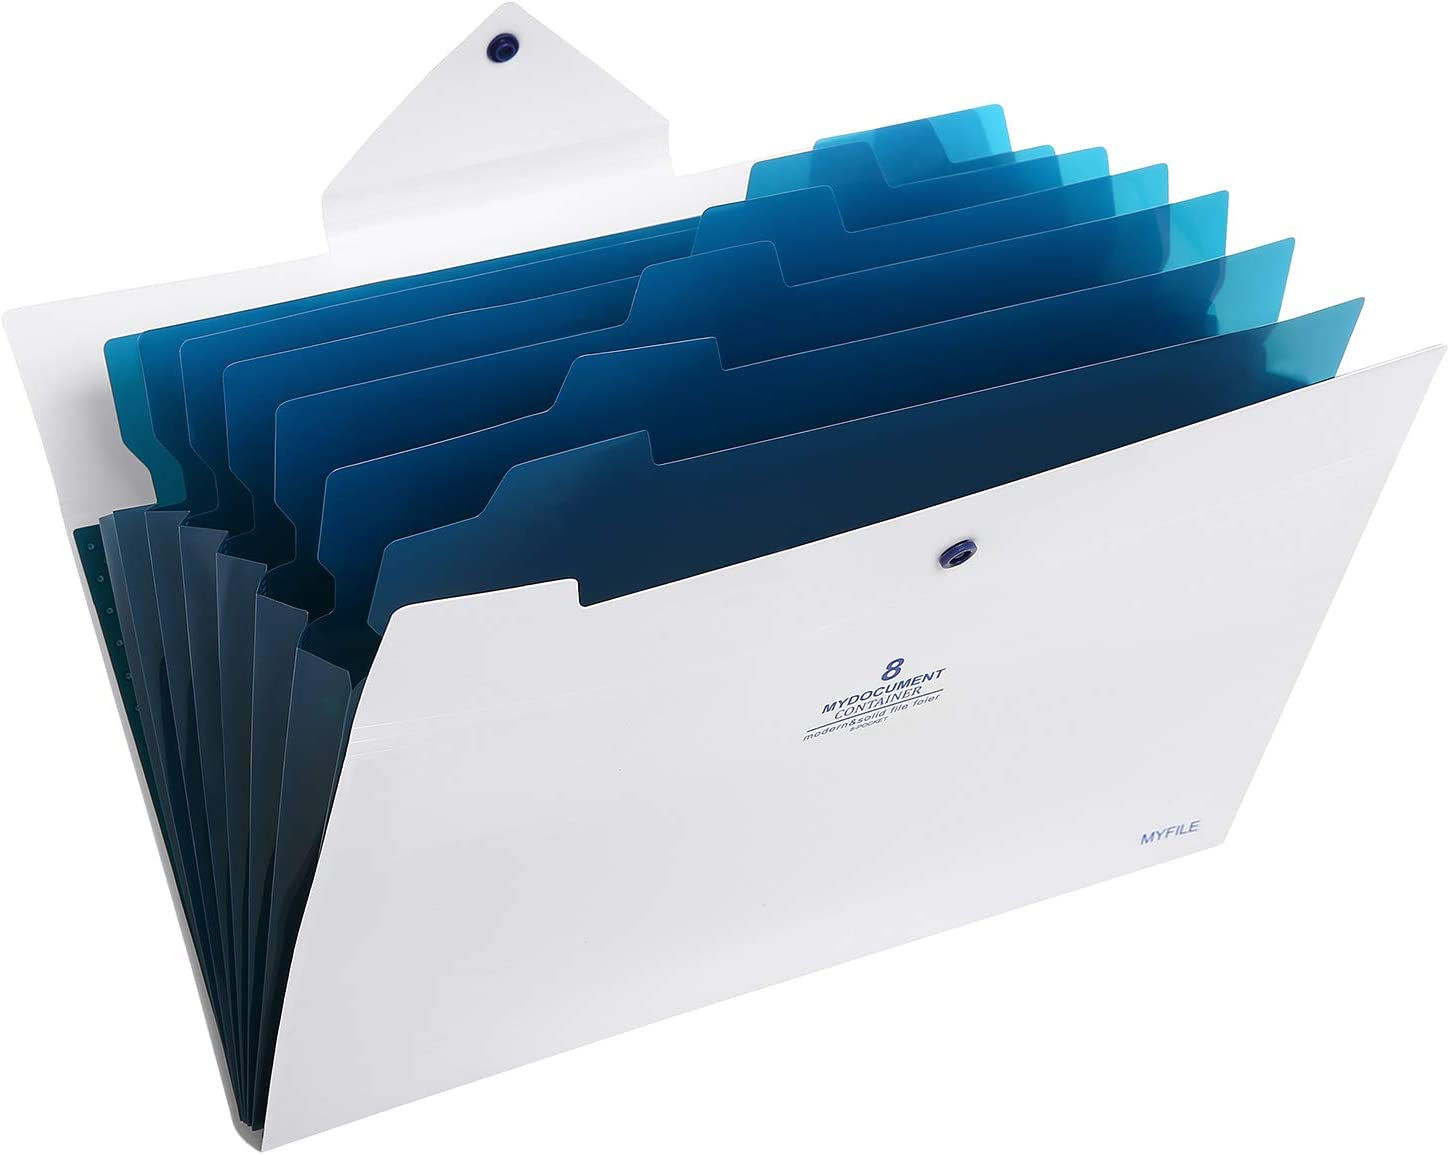 Skydue Office File Folders with 8 Pockets Letter Size Expanding Accordion Document Paper File Organizer (White)